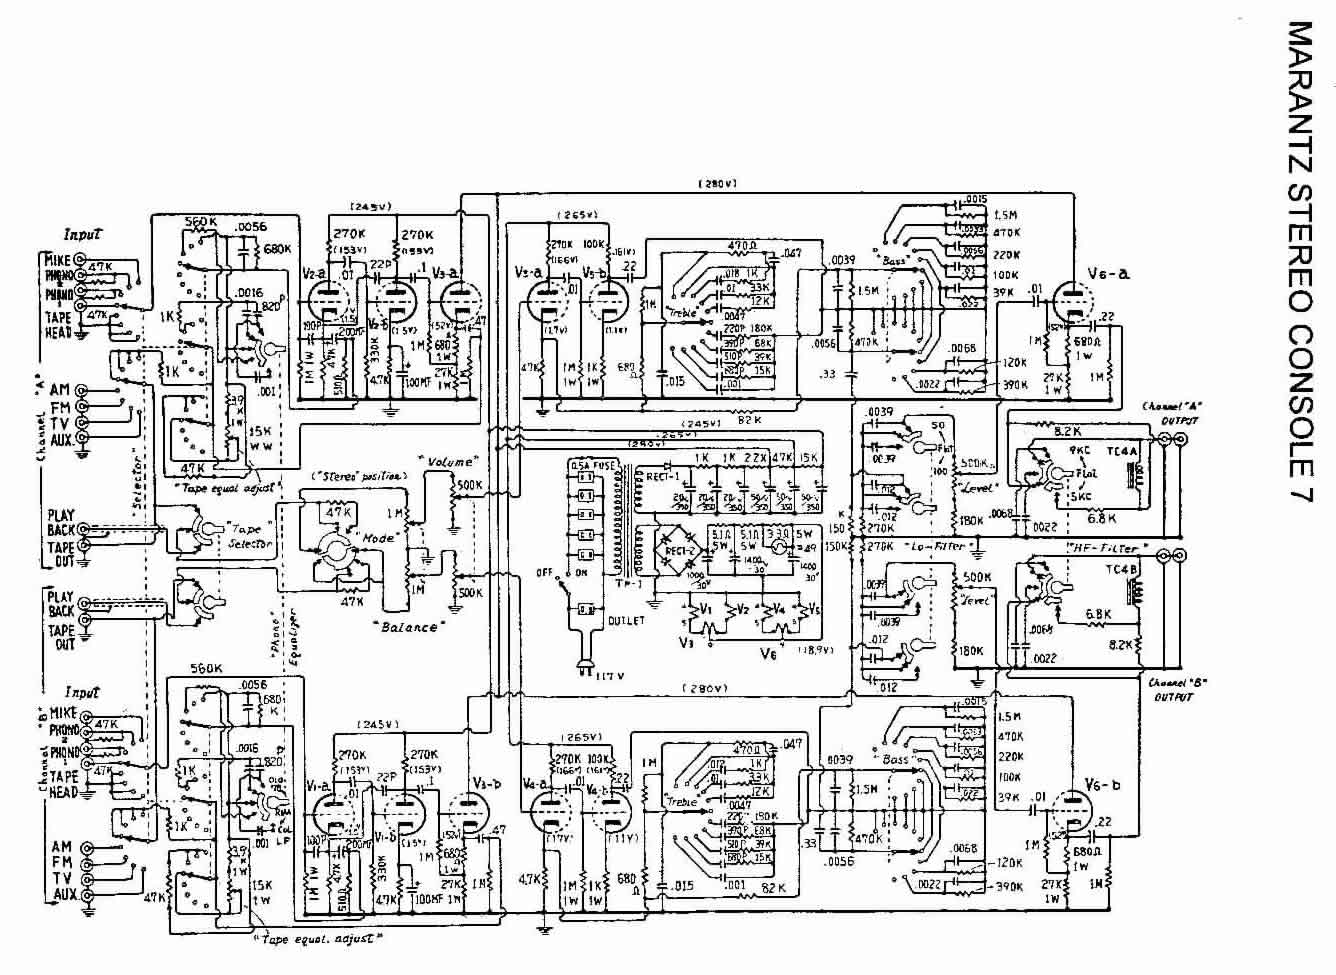 marantz 7 circuit diagram